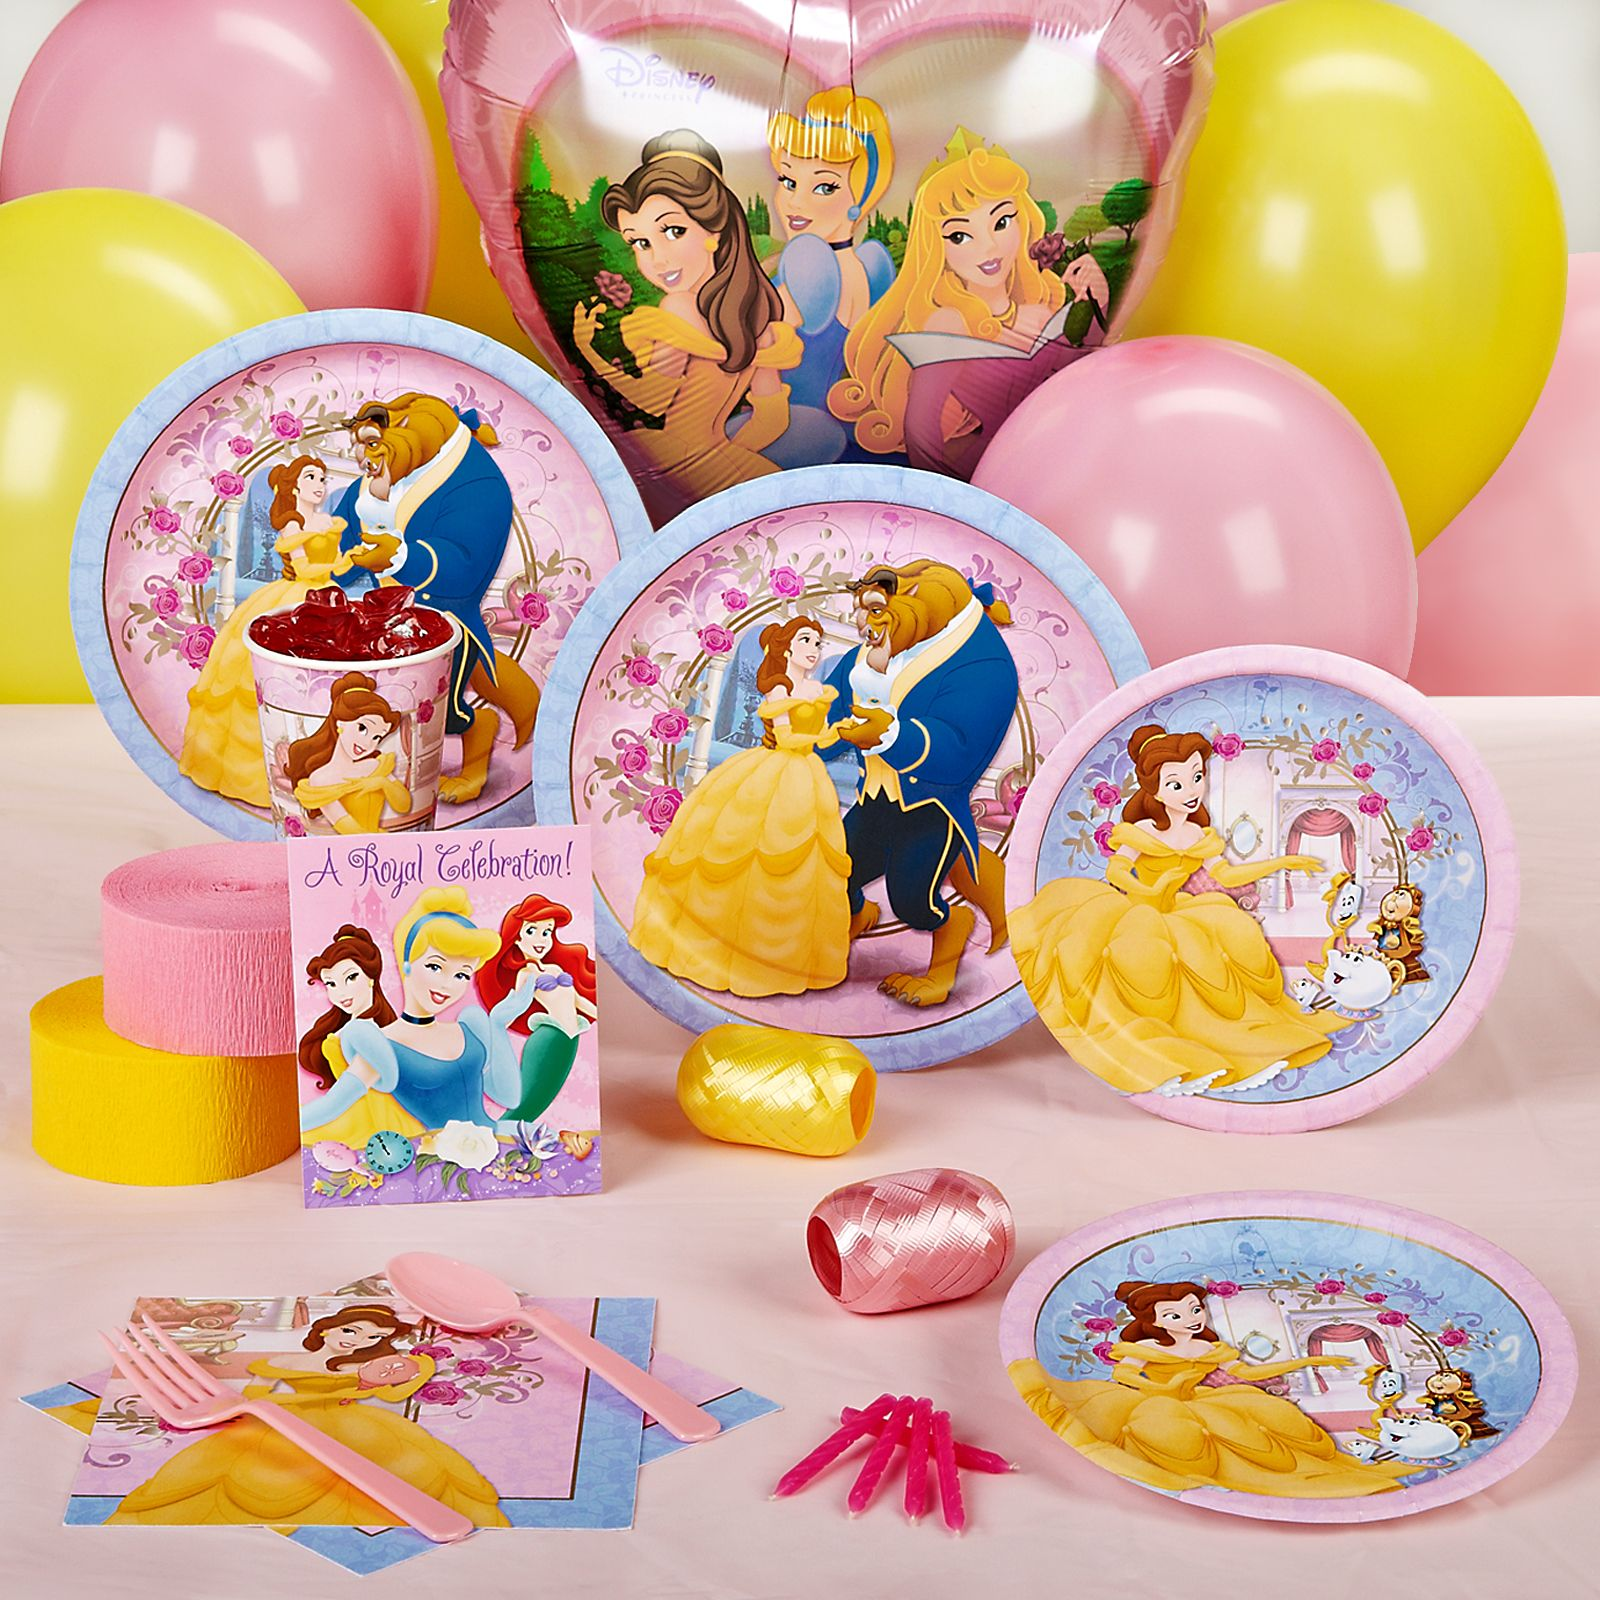 Decoration Stuff For Party Beauty And The Beast Party Beauty And The Beast Party